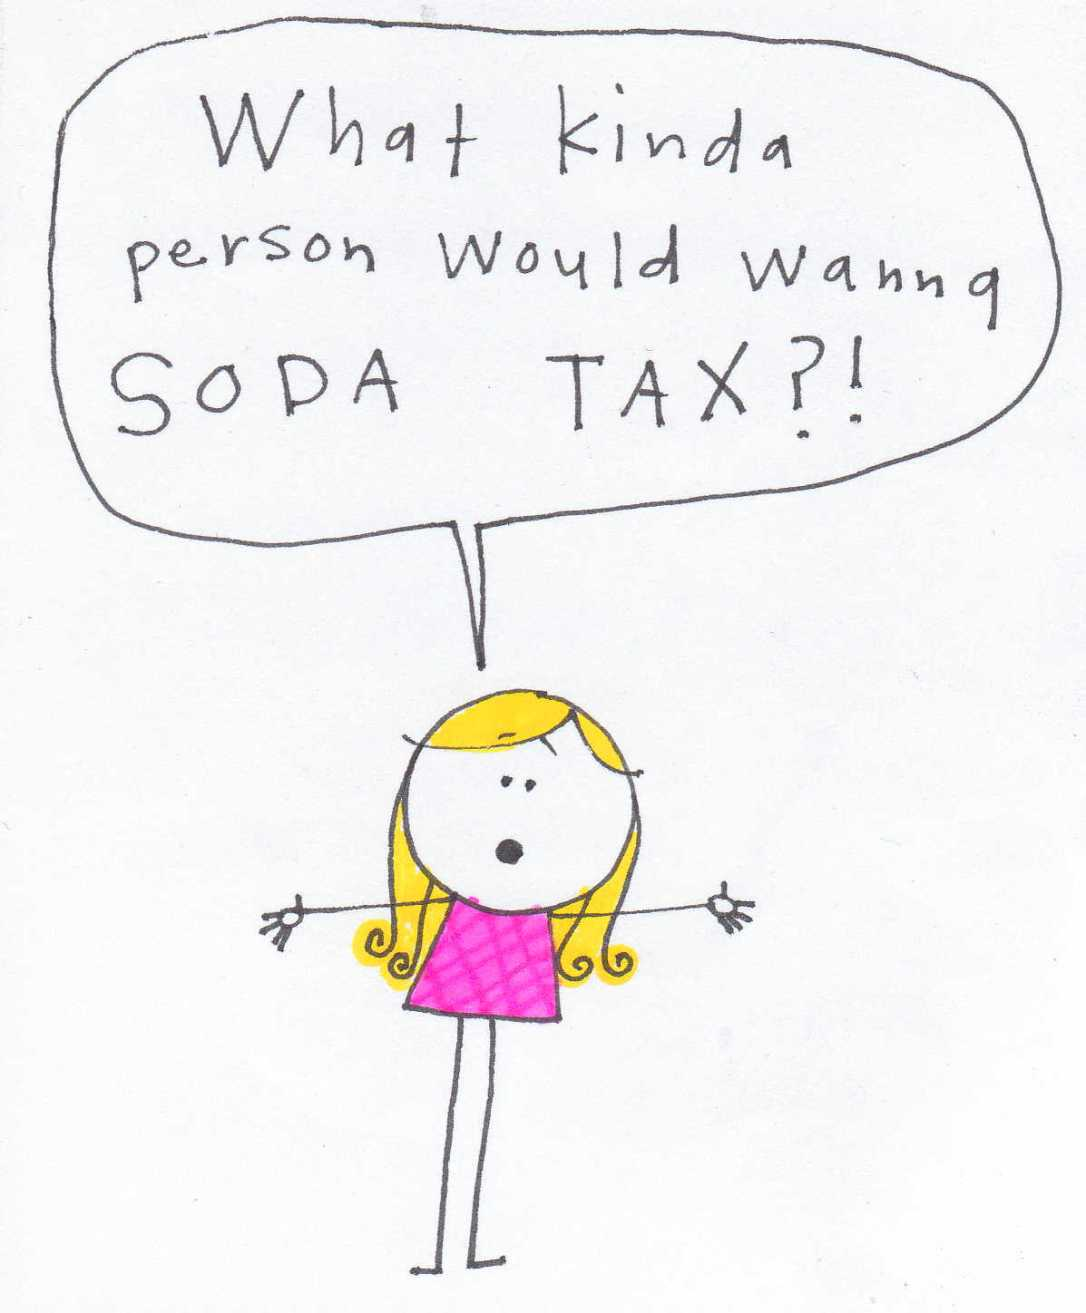 soda tax? the government is totally corrupt.